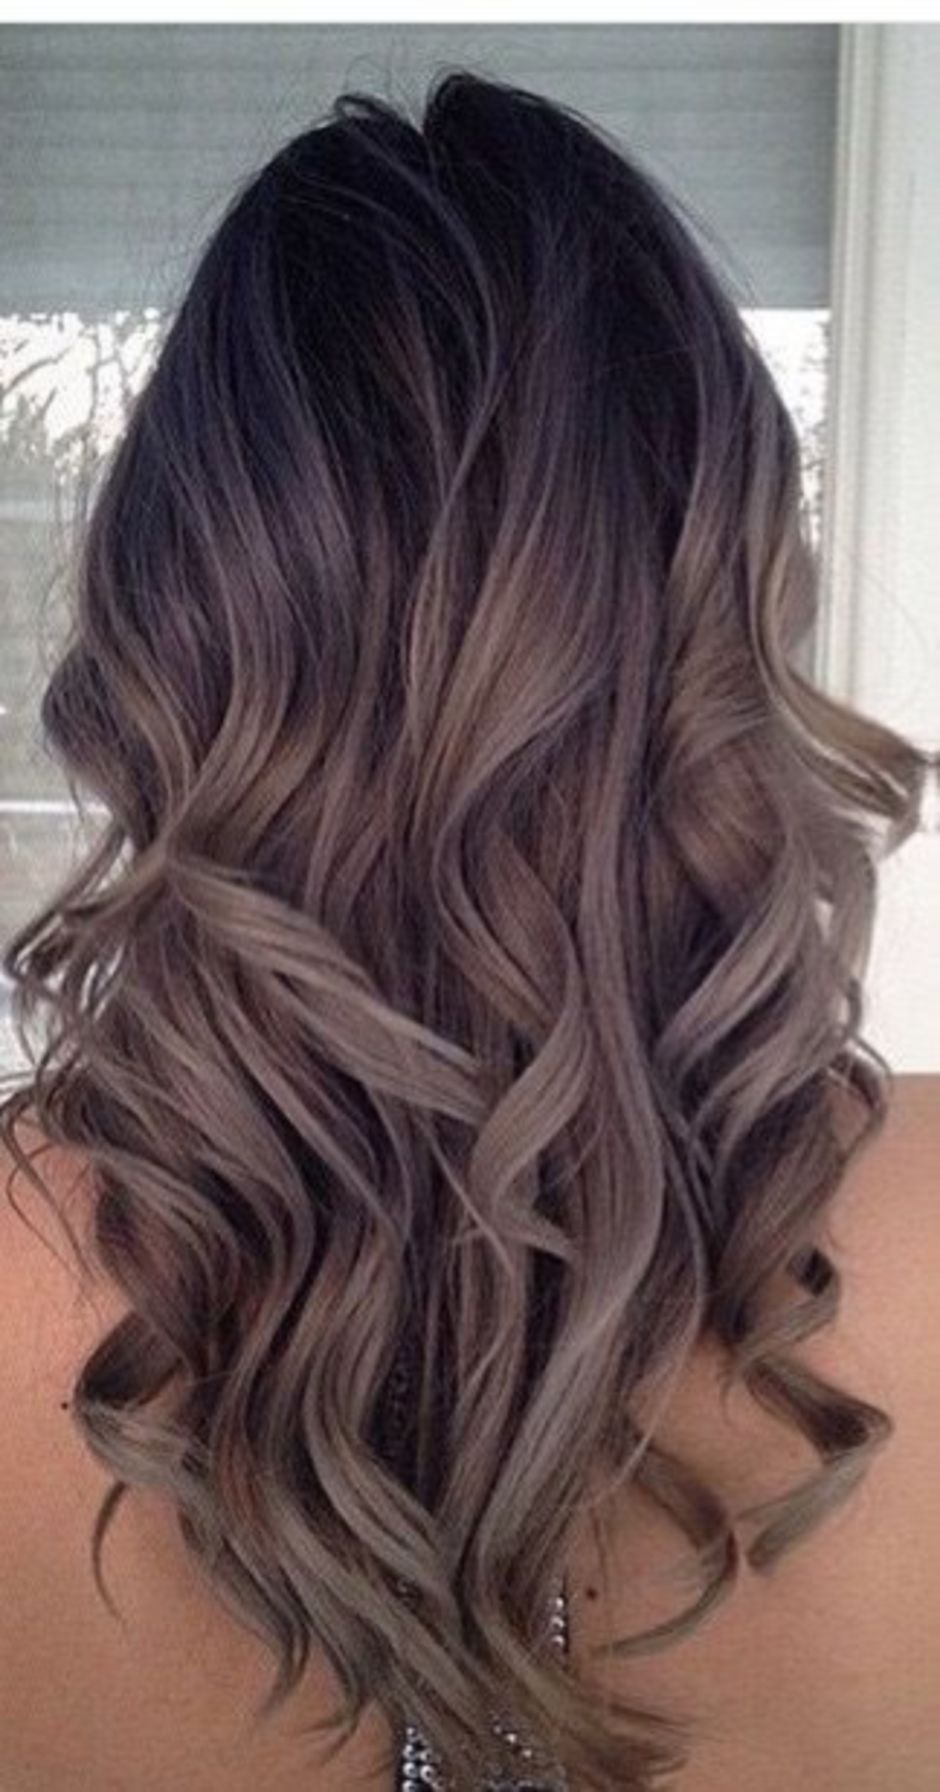 Ideas Mushroom Brown Hair That Makes You Look Stunning 4  Fashion Best